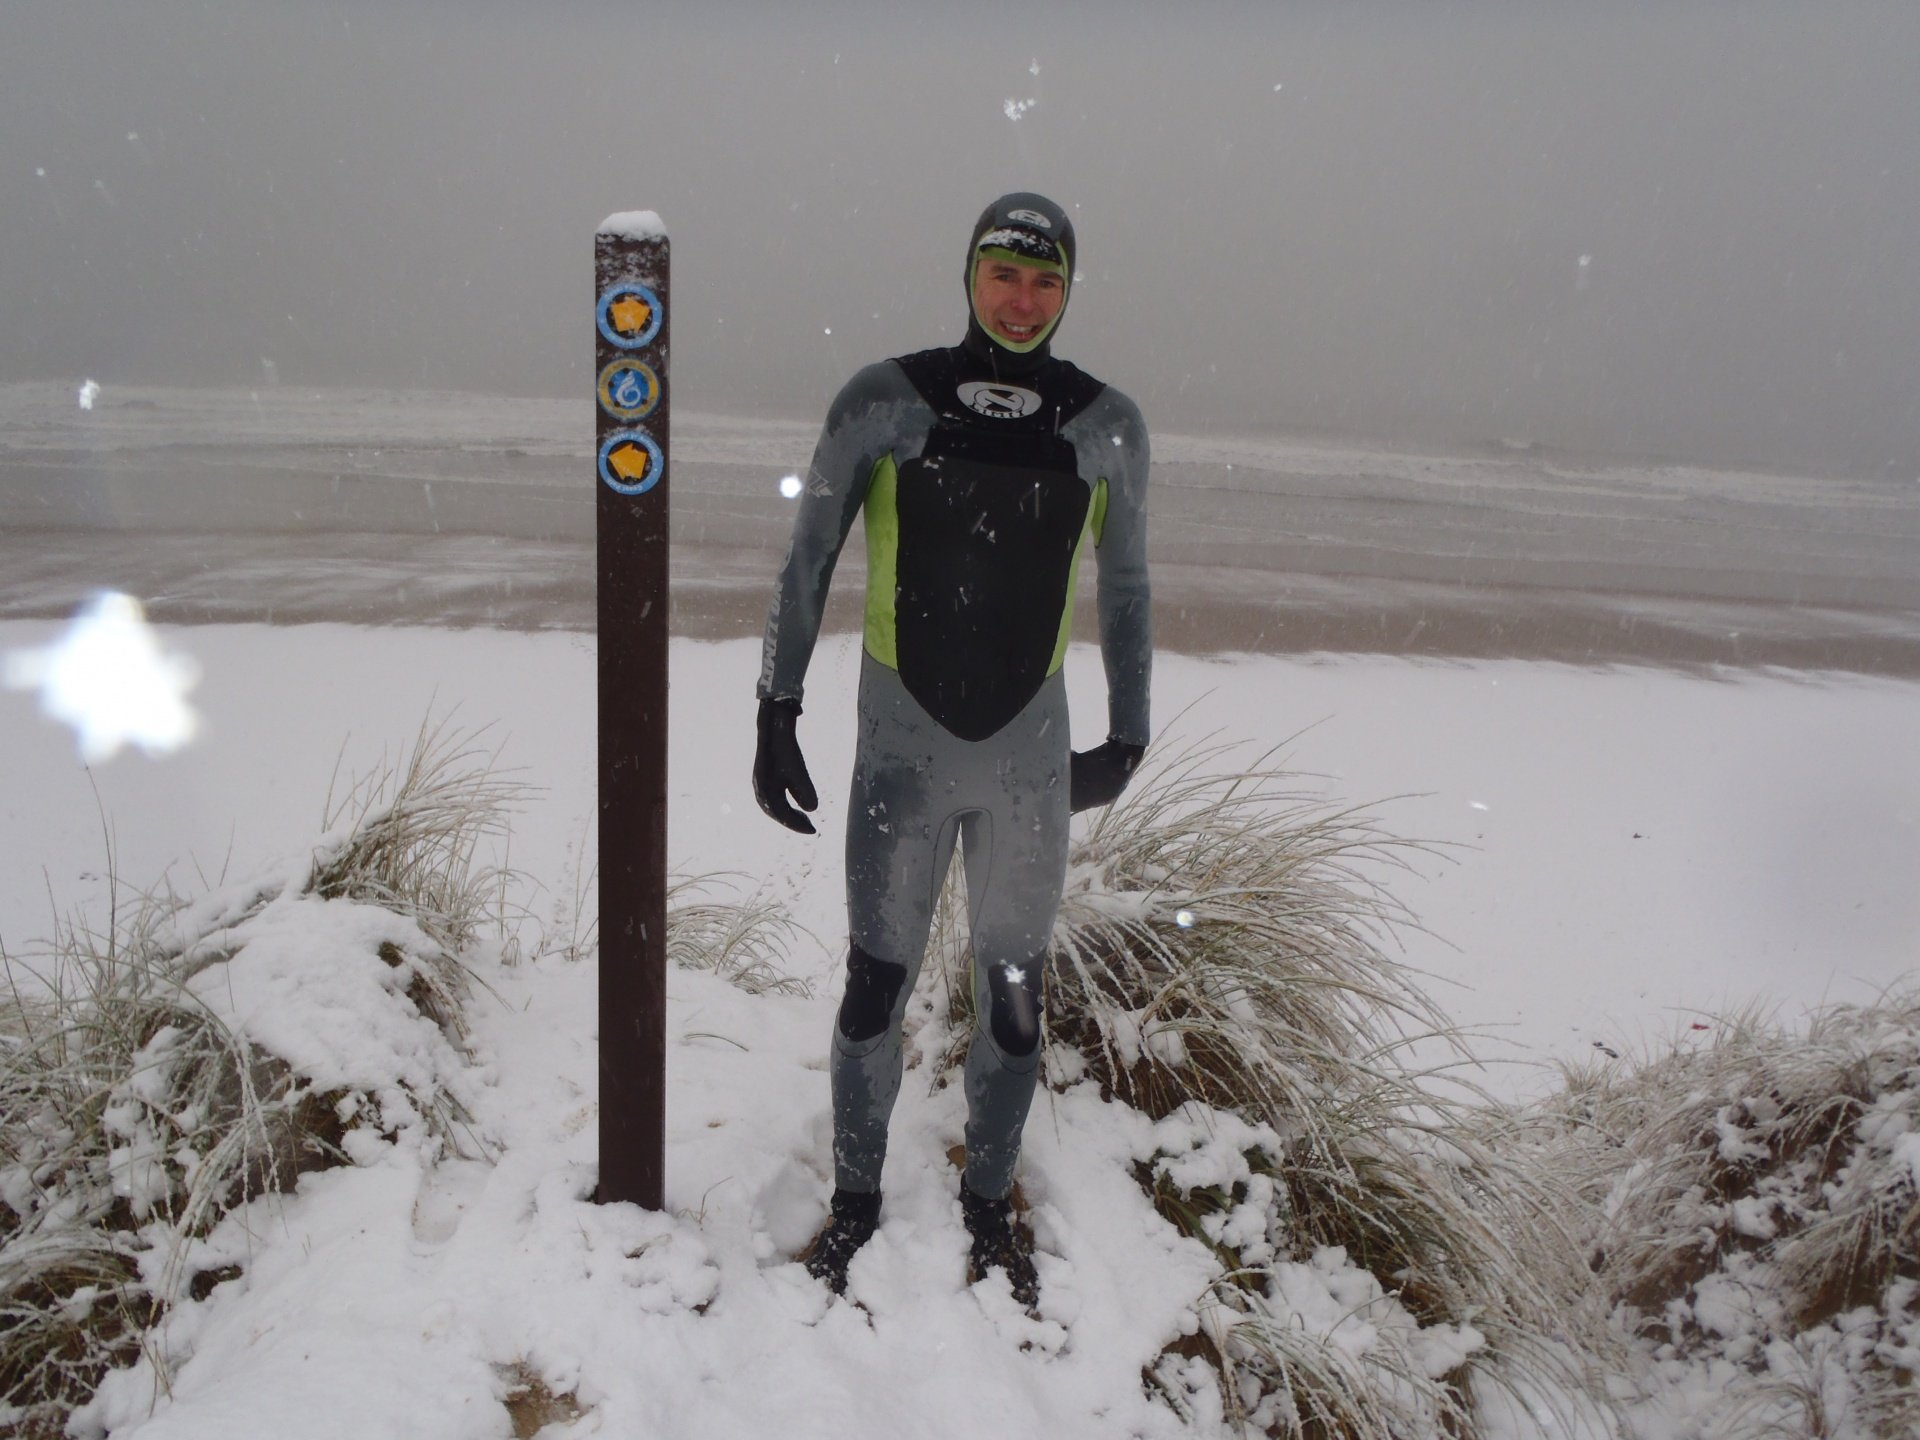 Welsh Surfing Federation's photo of Llangennith / Rhossili